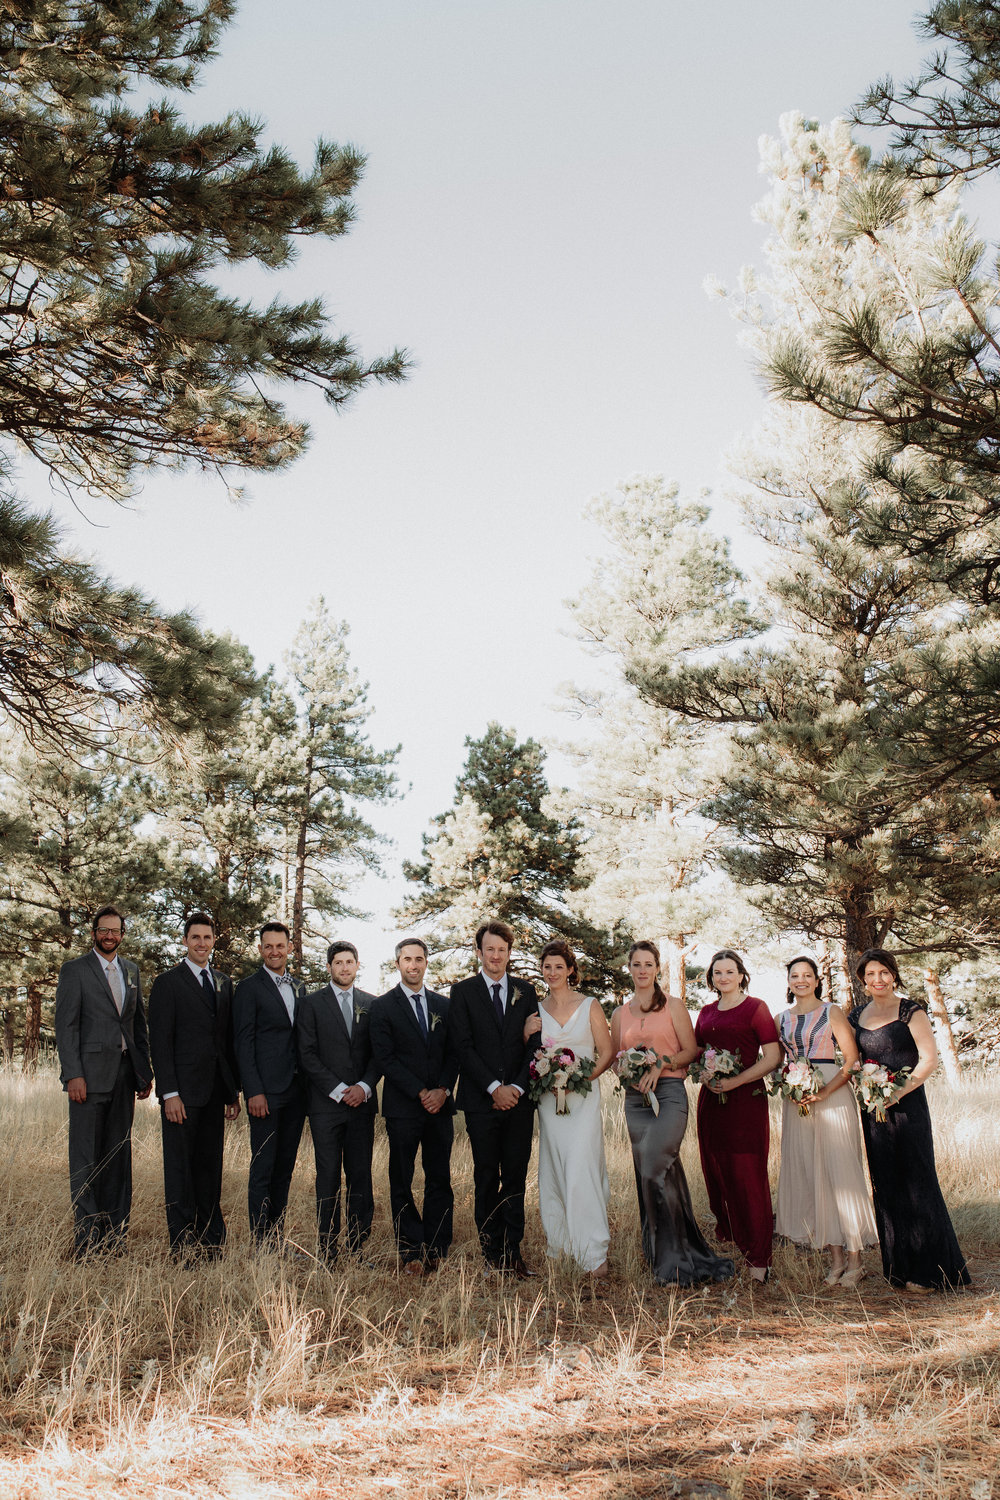 jessica-michael-boulder-colorado-wedding-229.jpg